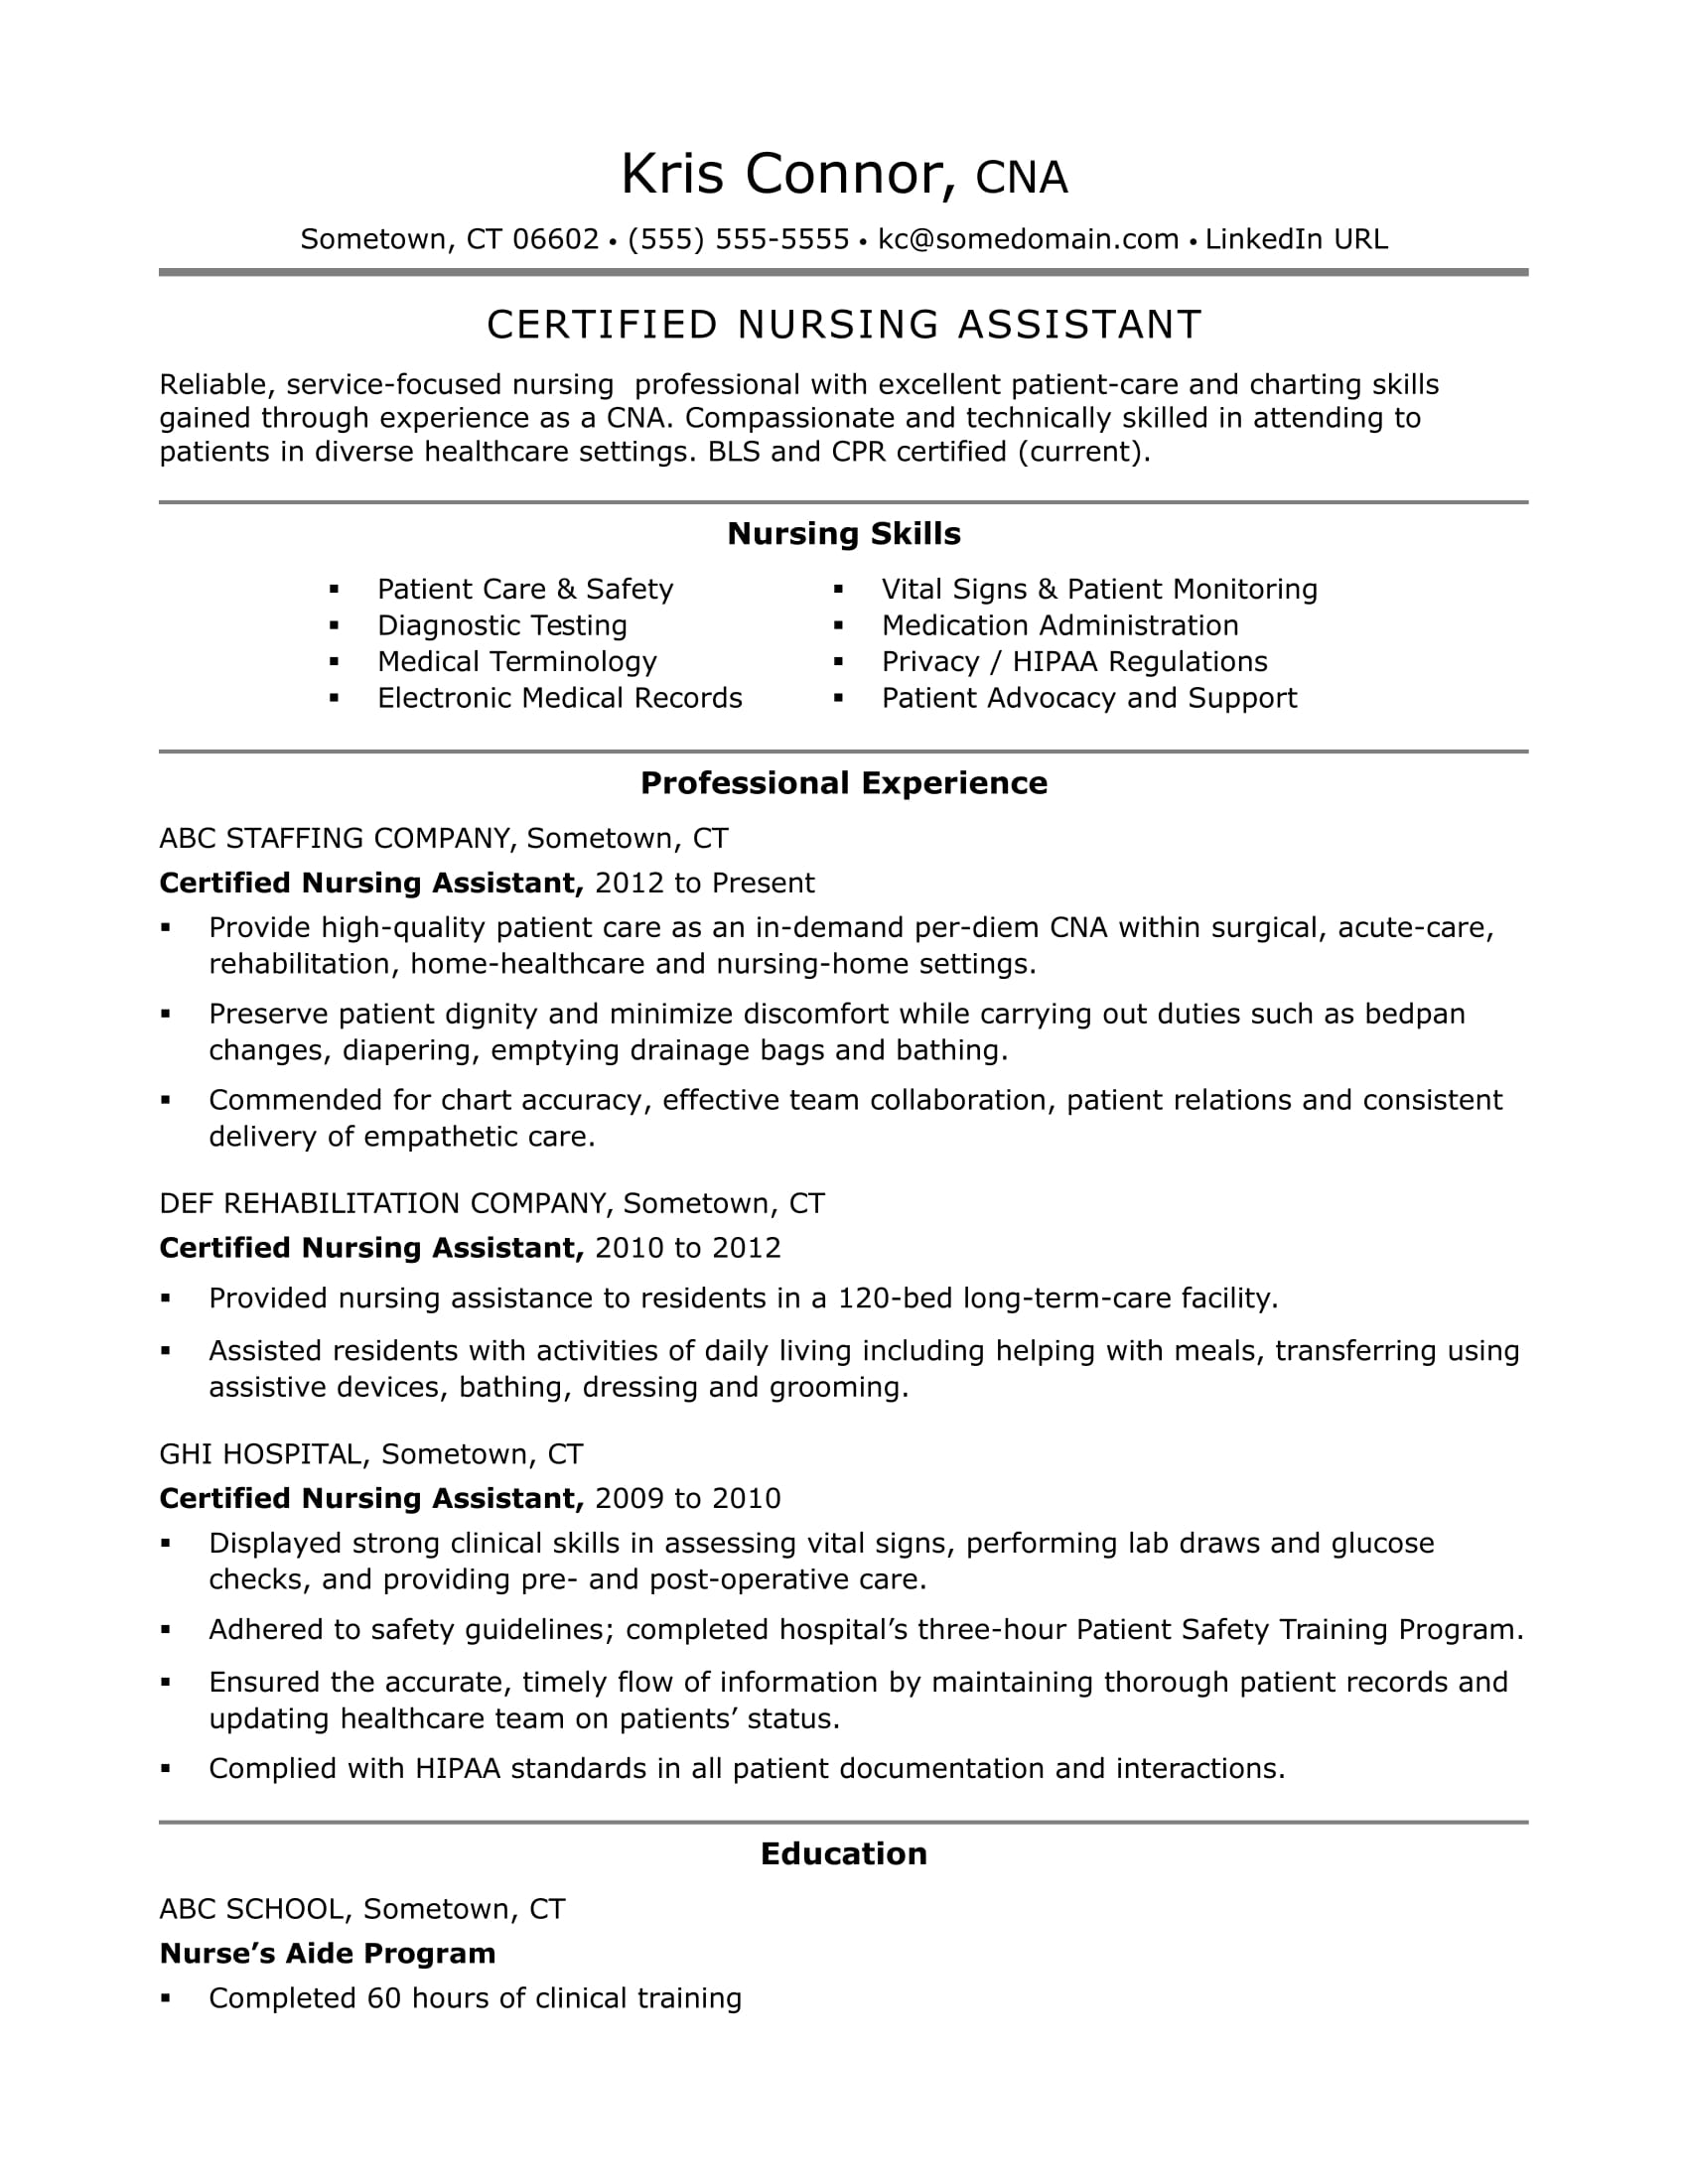 cna resume examples skills for cnas monster certified nursing assistant cover letter post Resume Certified Nursing Assistant Resume Cover Letter